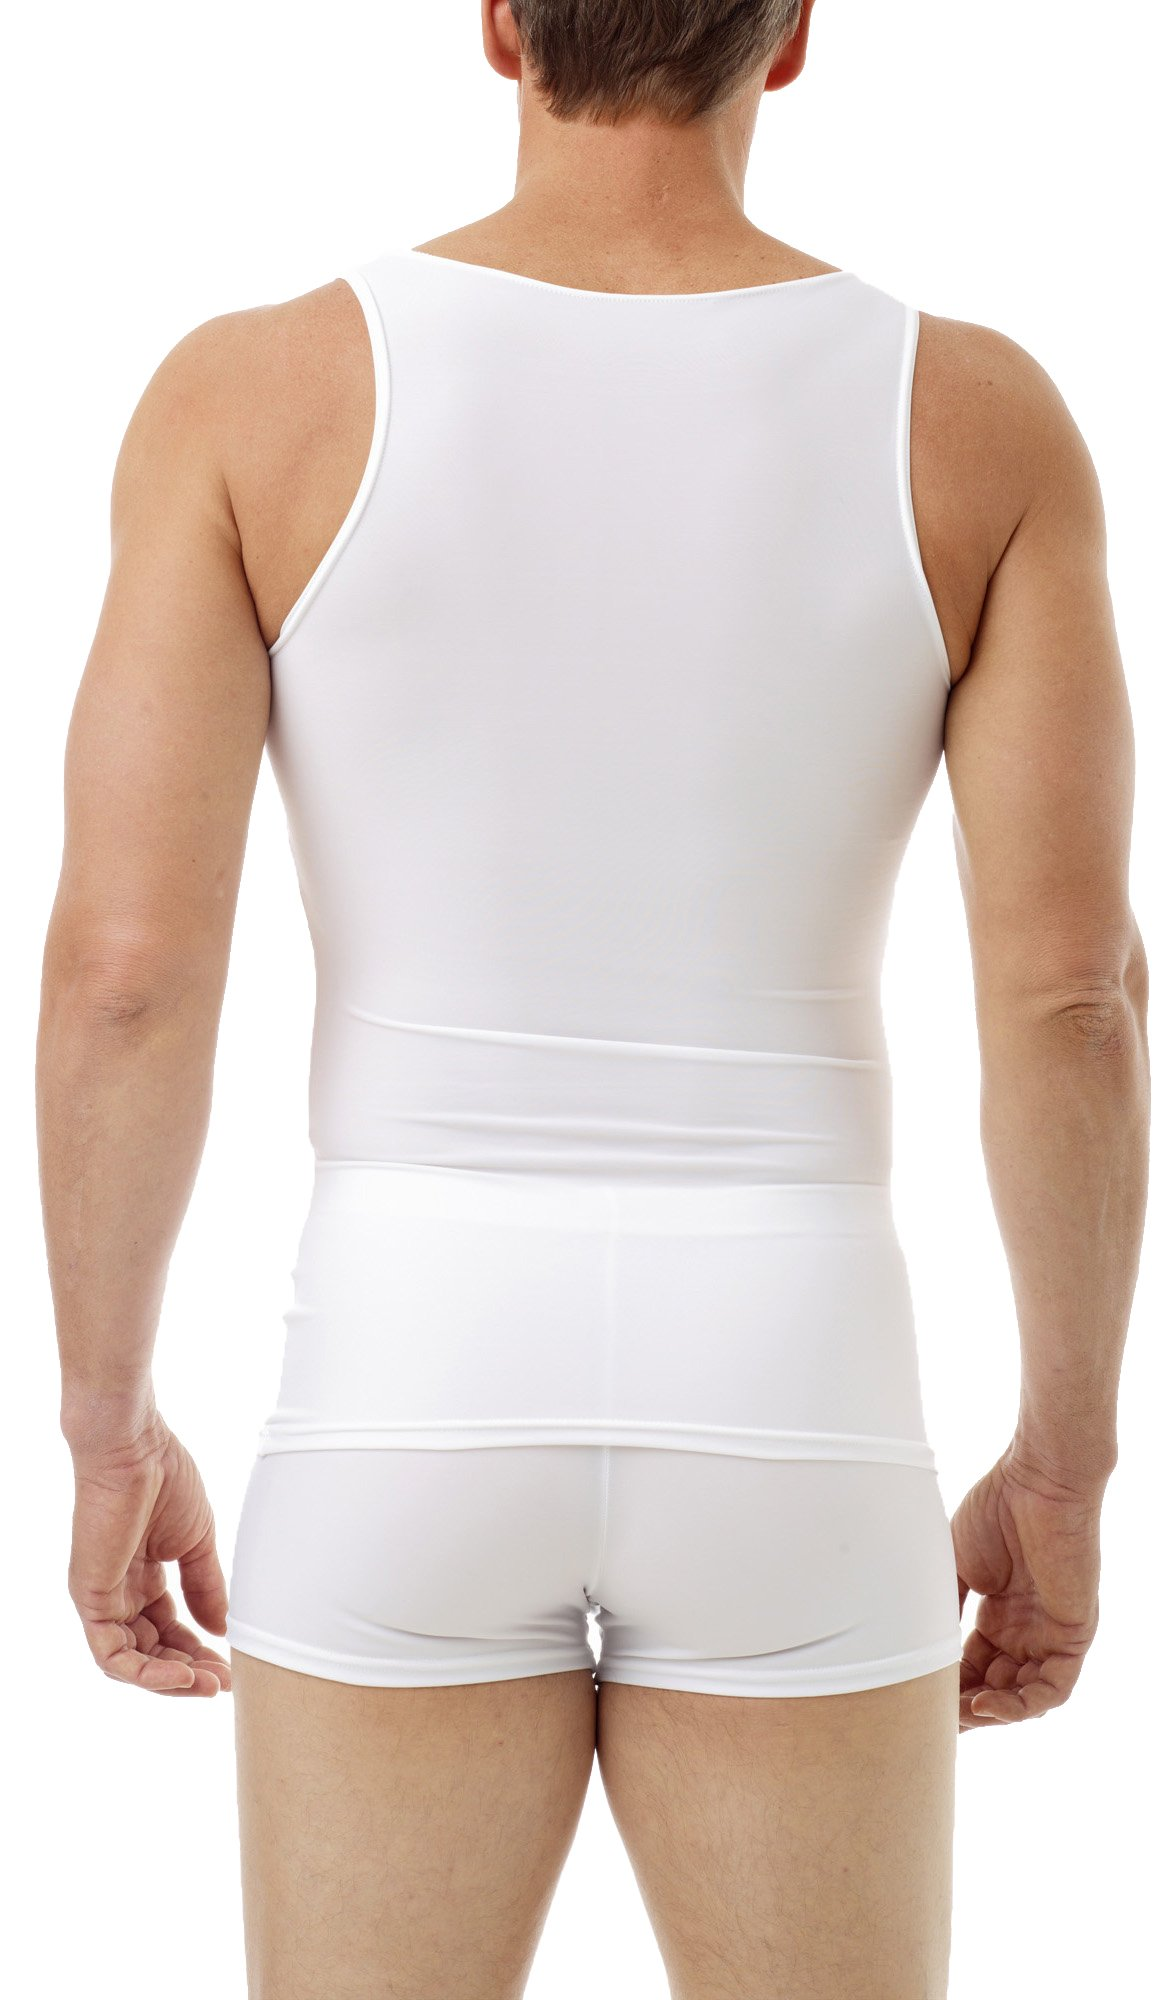 Underworks Mens Microfiber Compression Tank, XSmall, White by Underworks (Image #2)